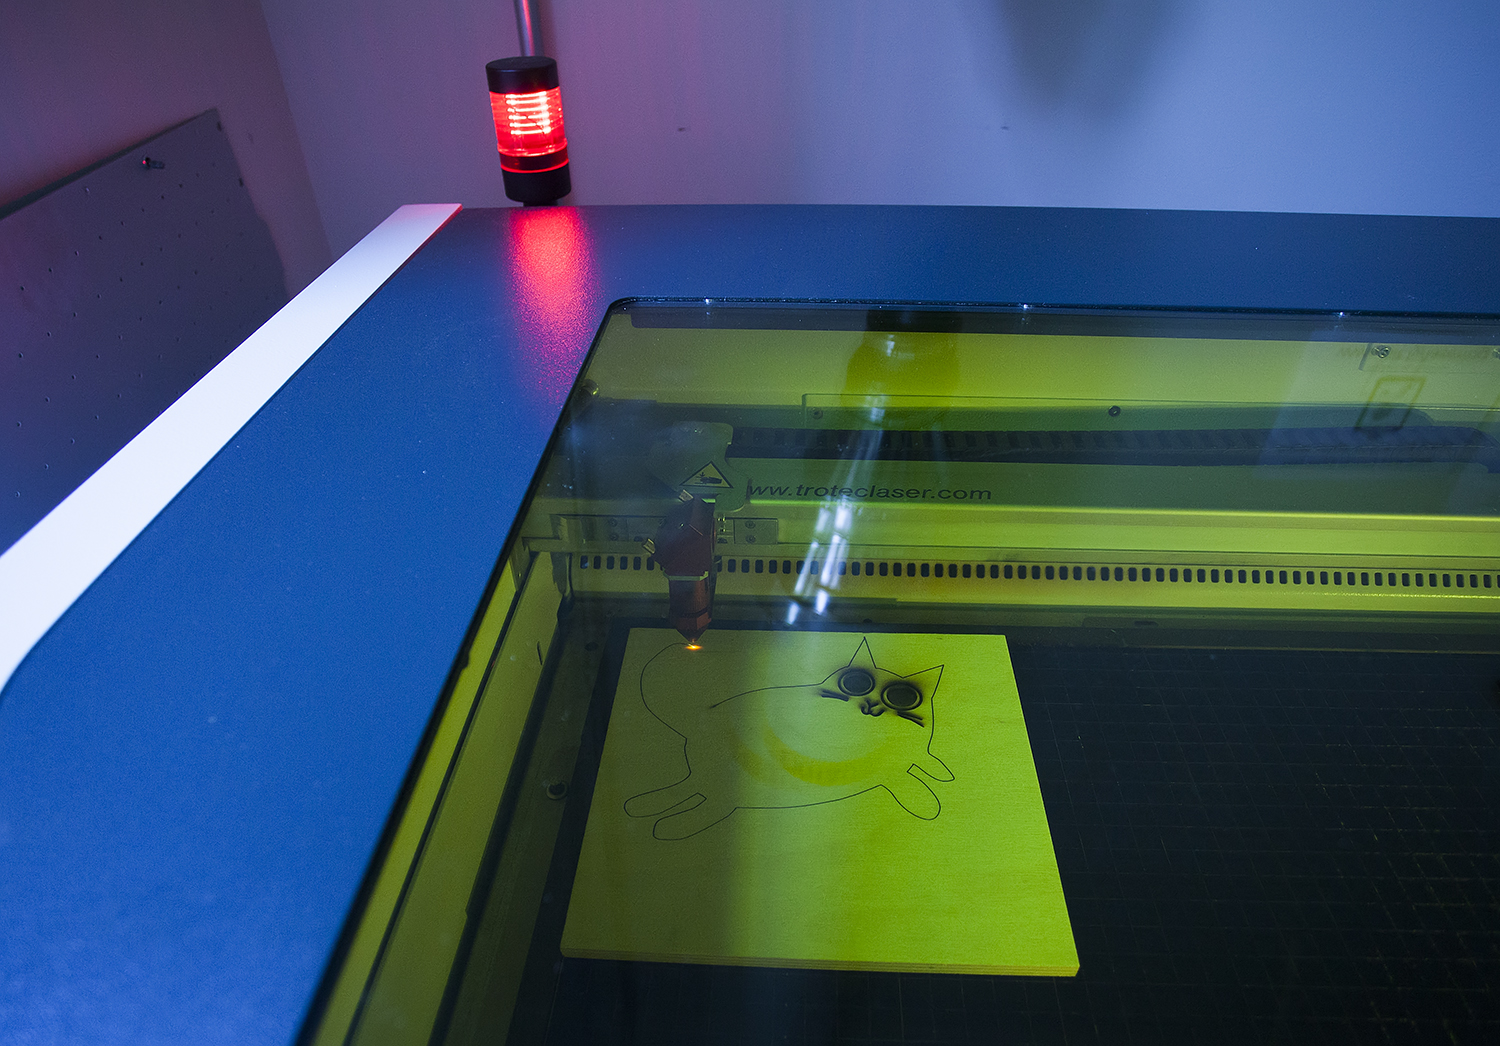 laser cutter machine cutting out a running cat shape on a square piece of wood